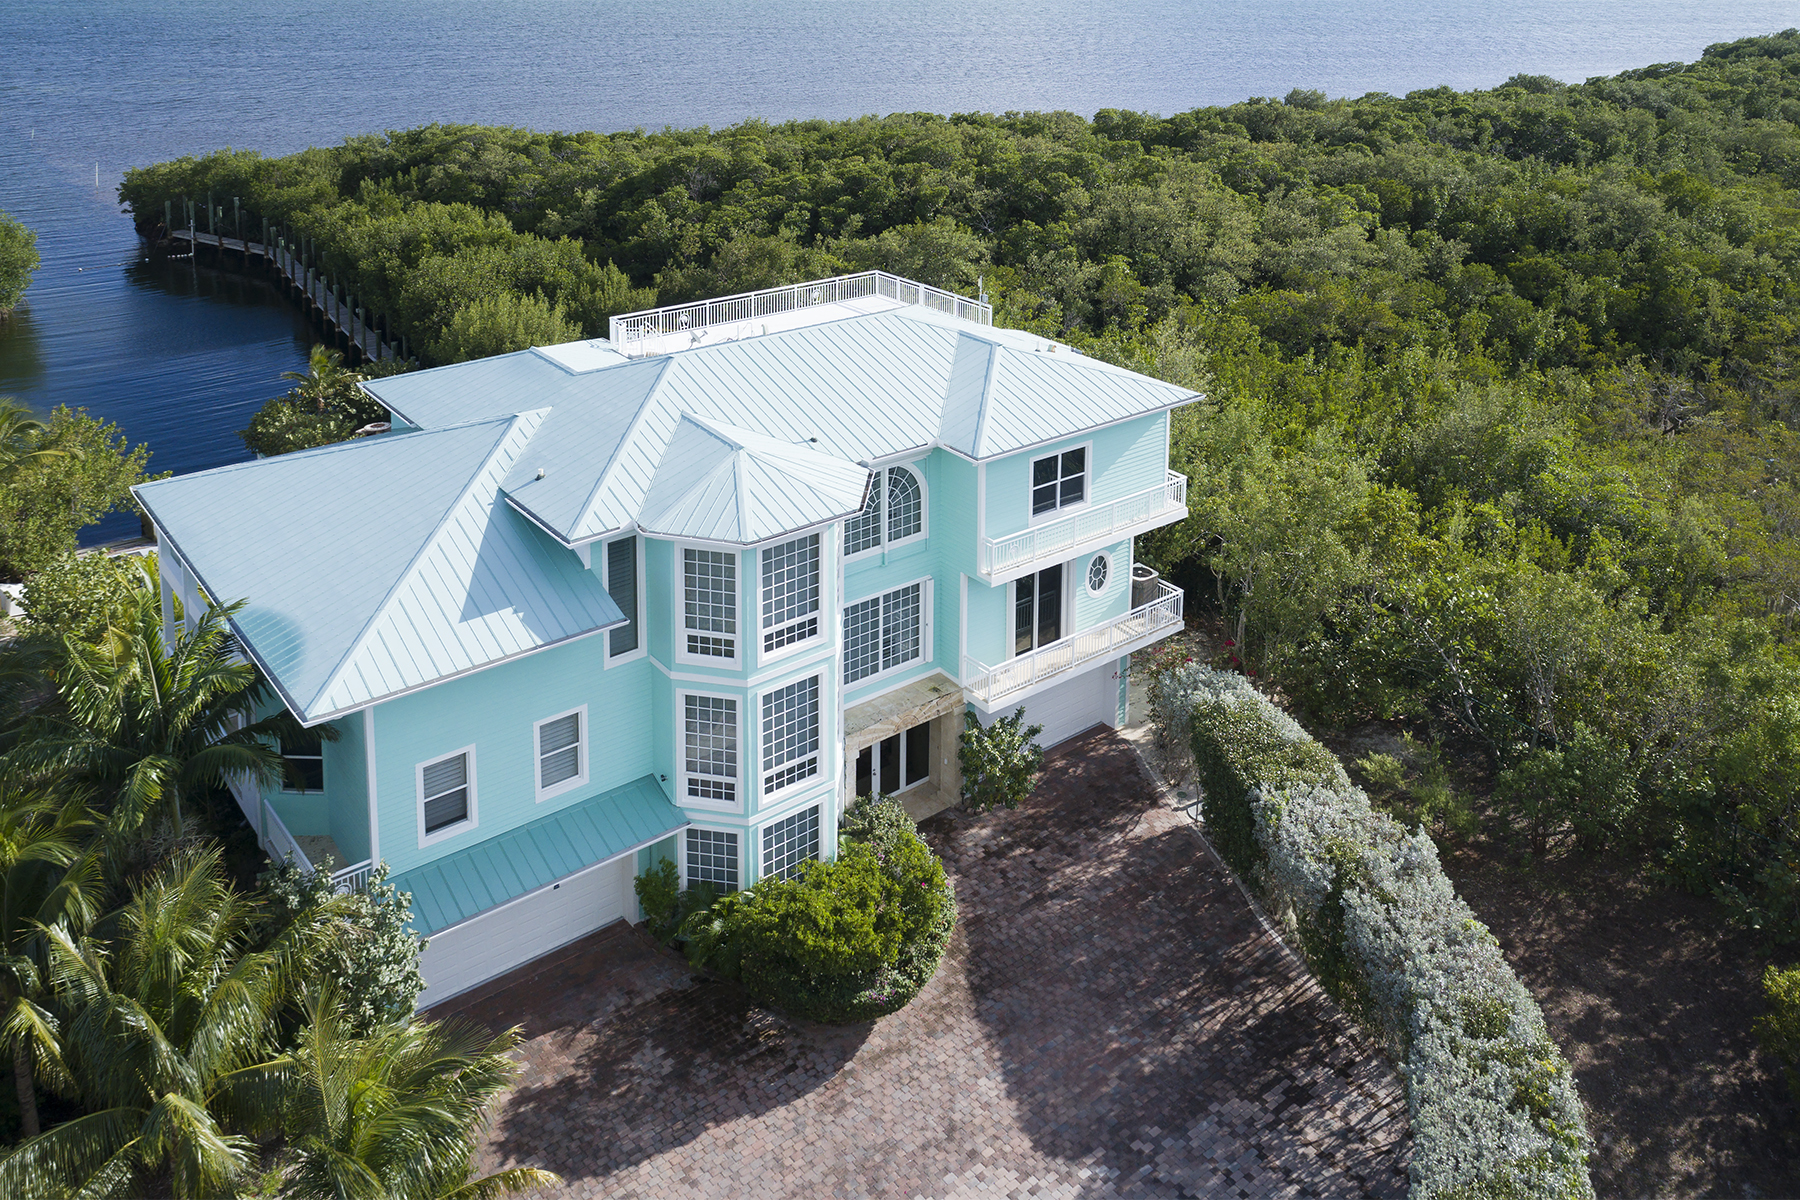 Maison unifamiliale pour l Vente à Grand Waterfront Home with Guest House 97251 Overseas Highway South Side Key Largo, Florida, 33037 États-Unis